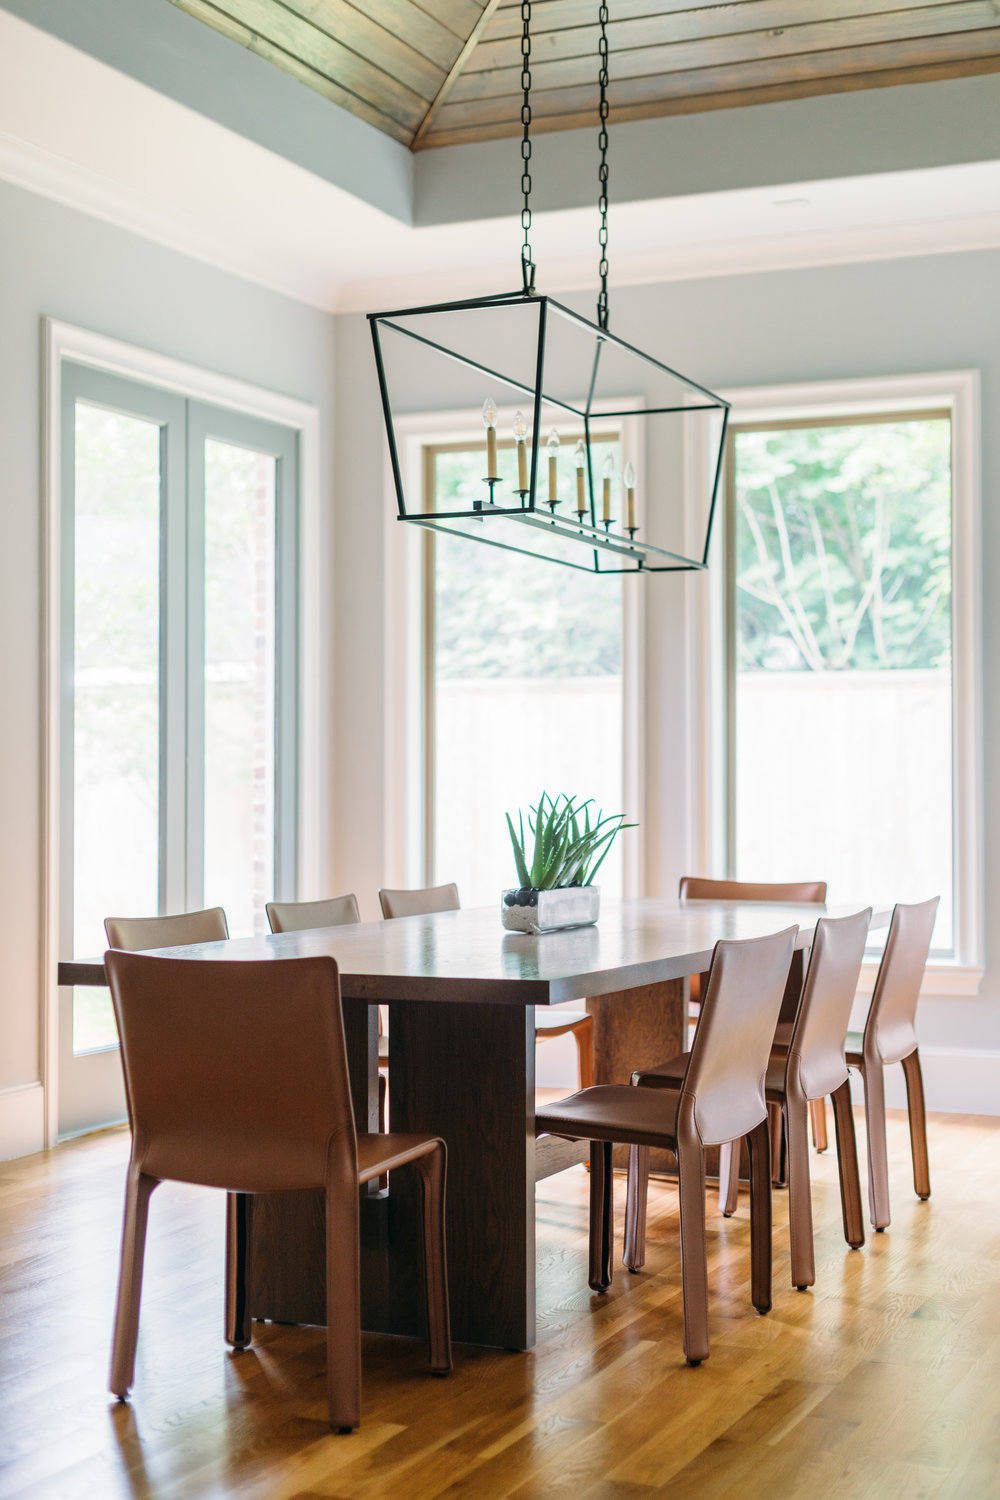 CEH Custom bespoke dining table in Oak for Layne  Photo Credit: Kelly Christine Sutton